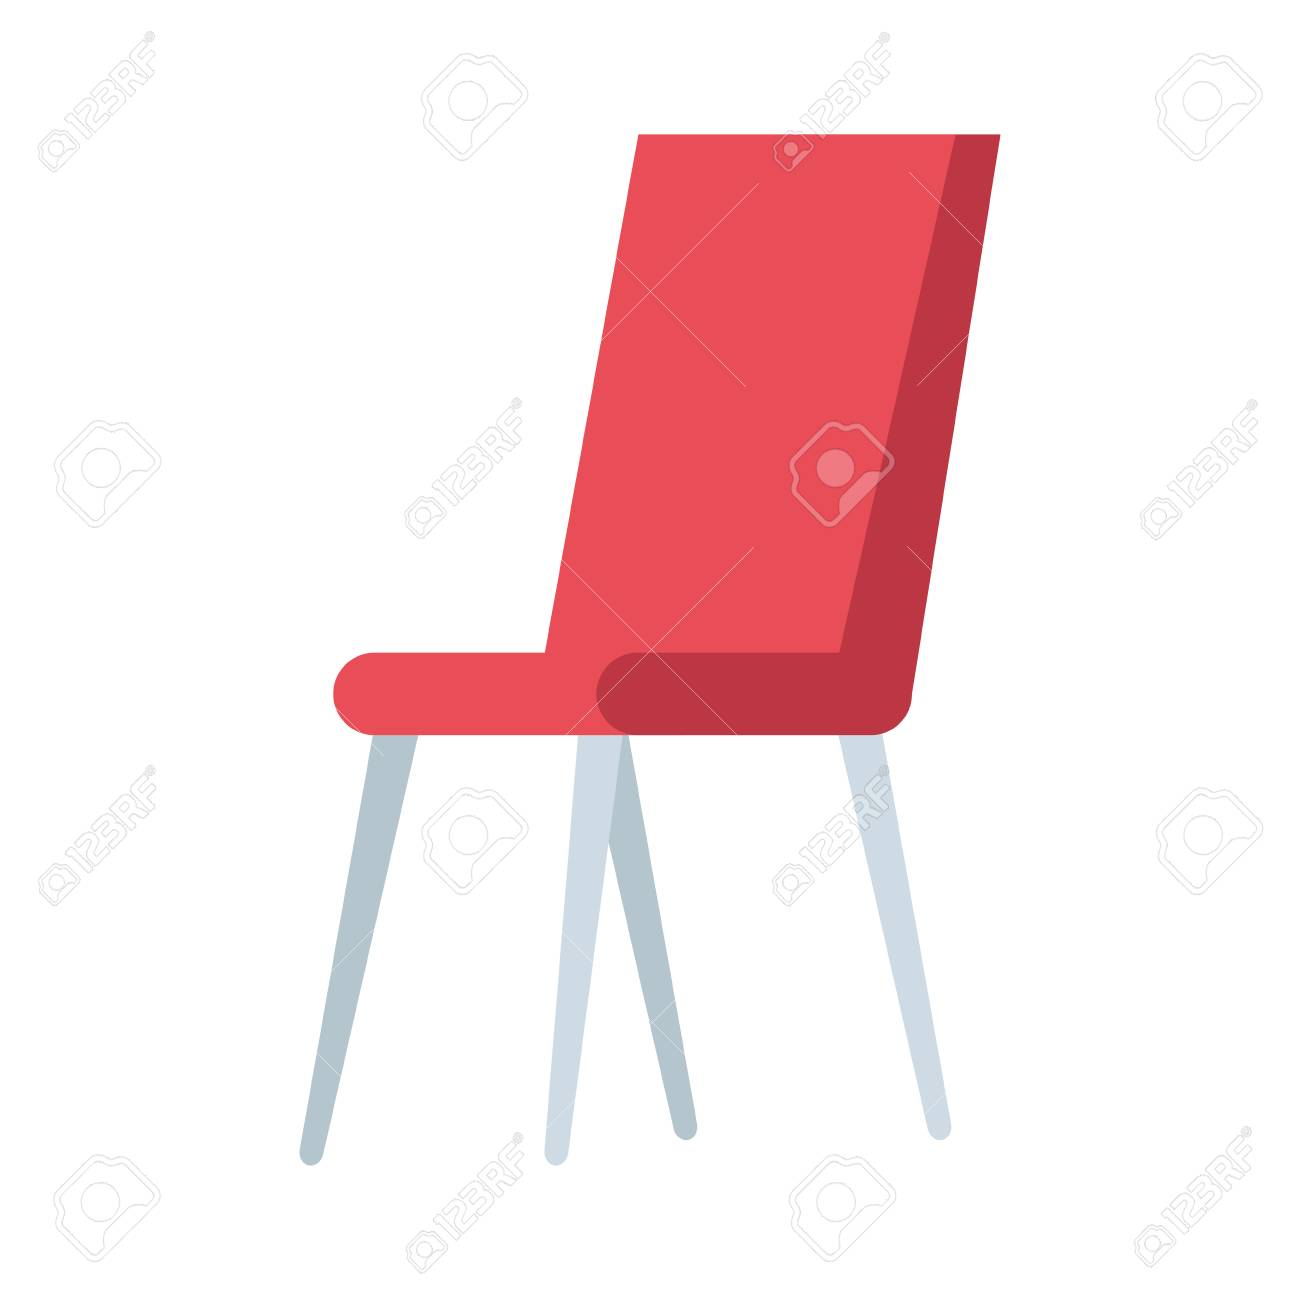 chair classic isolated icon vector illustration design - 123639101